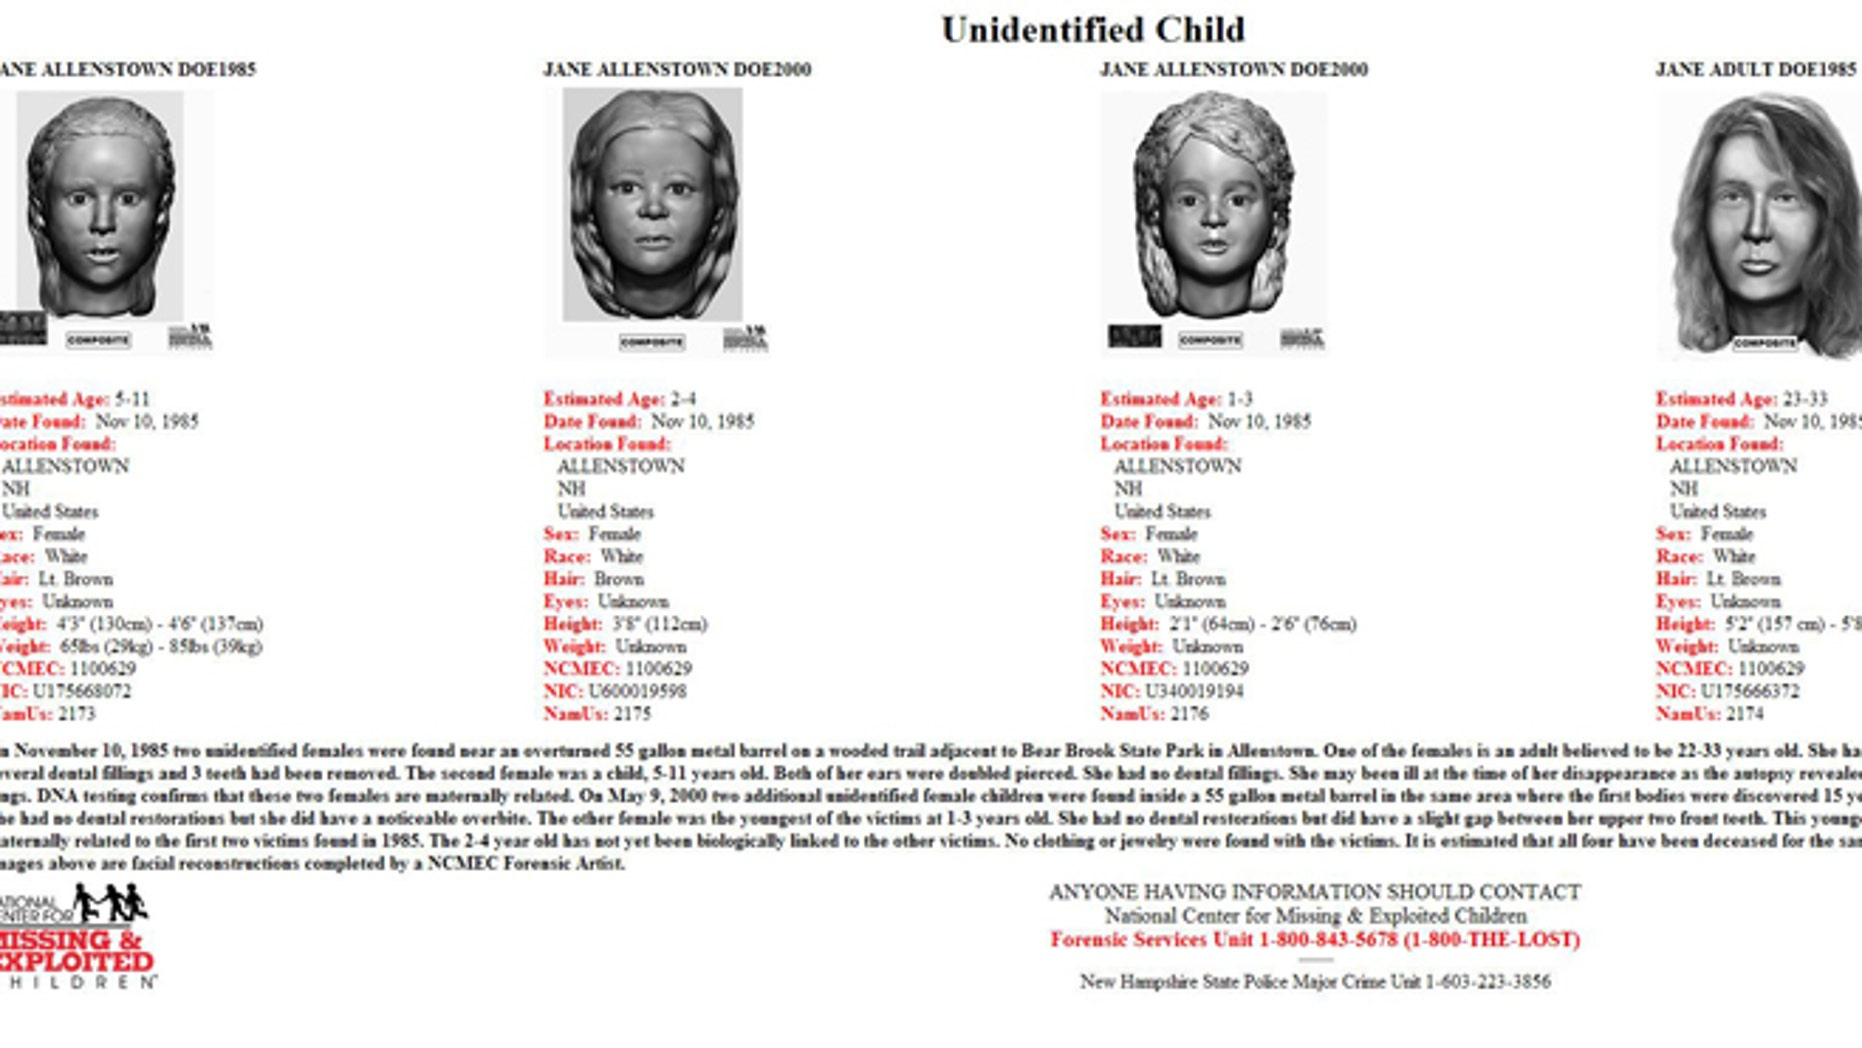 A poster with new images of the four victims found in Allentown, N.H. in 1985 and 2000.